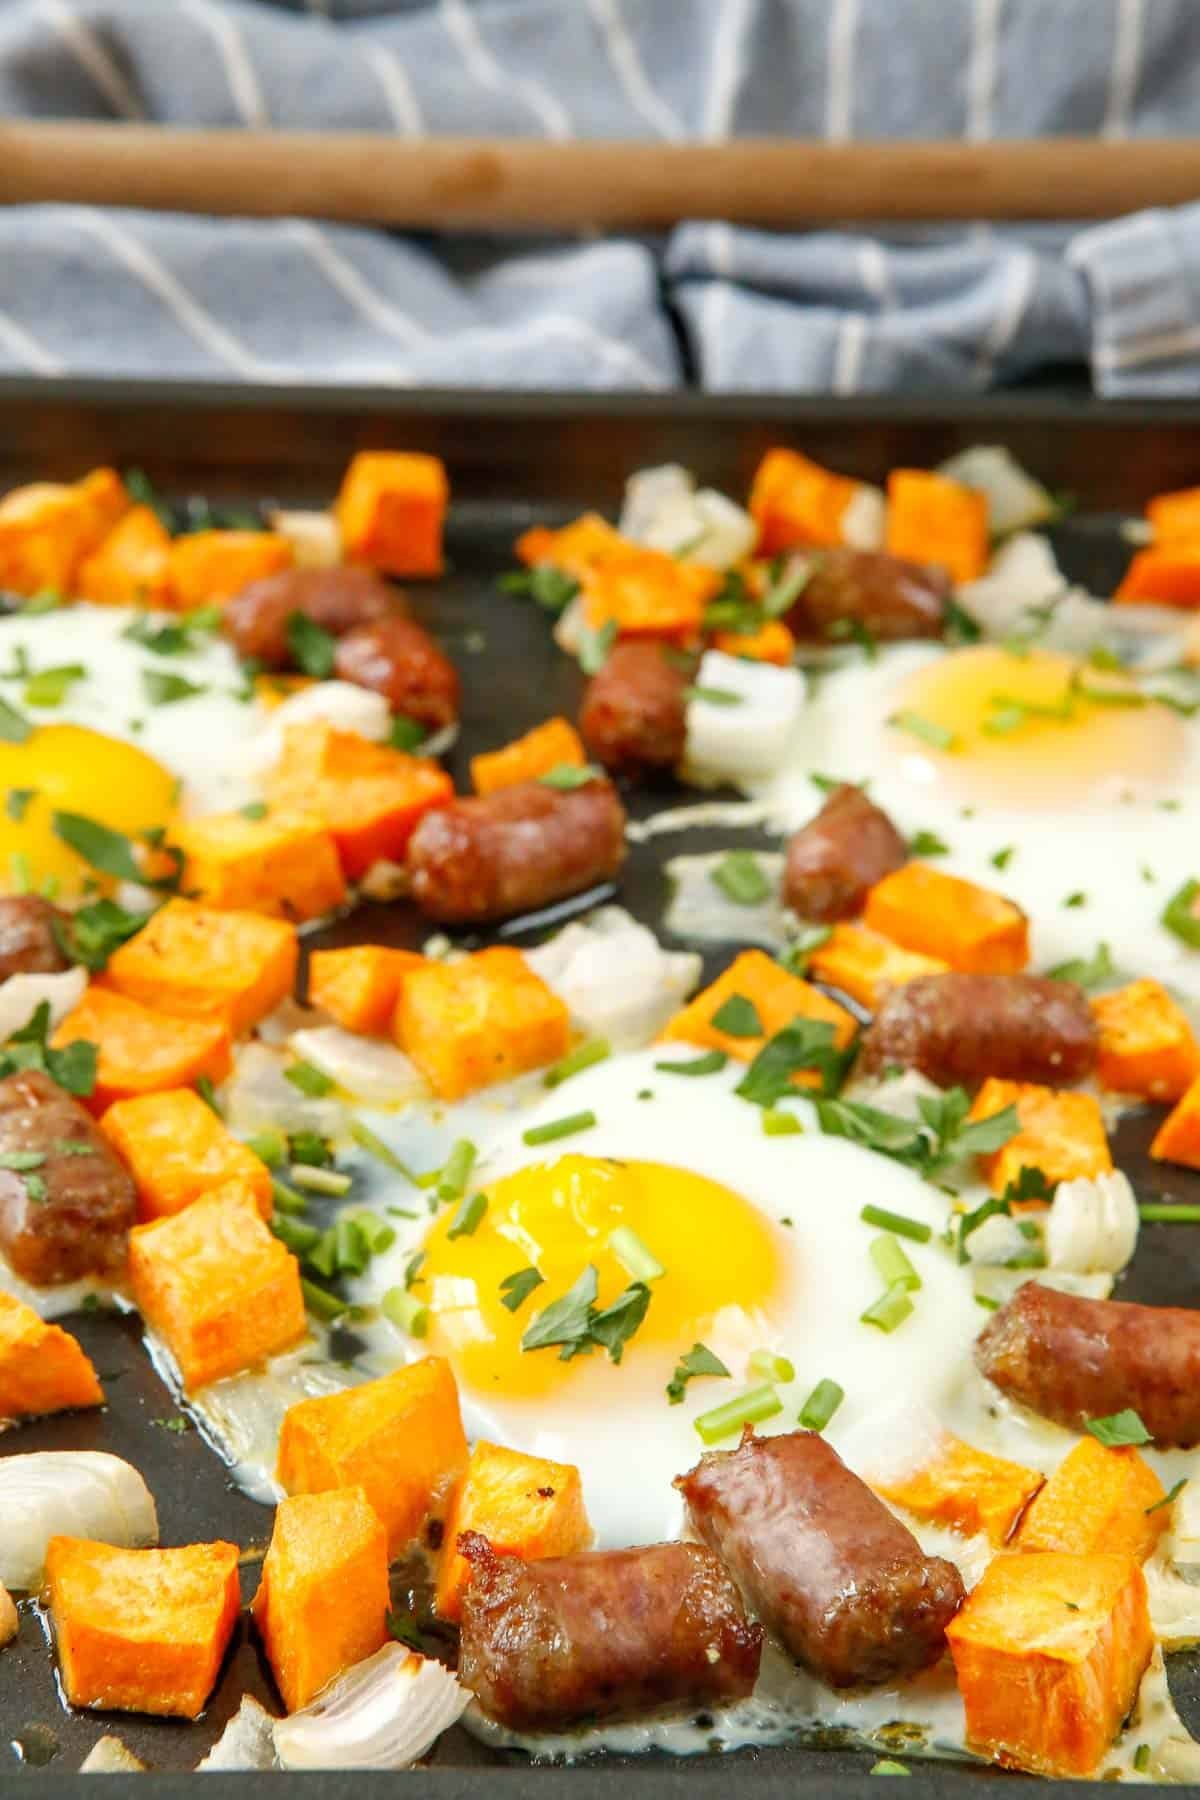 Eggs, sausage, and sweet potatoes on a sheet pan.